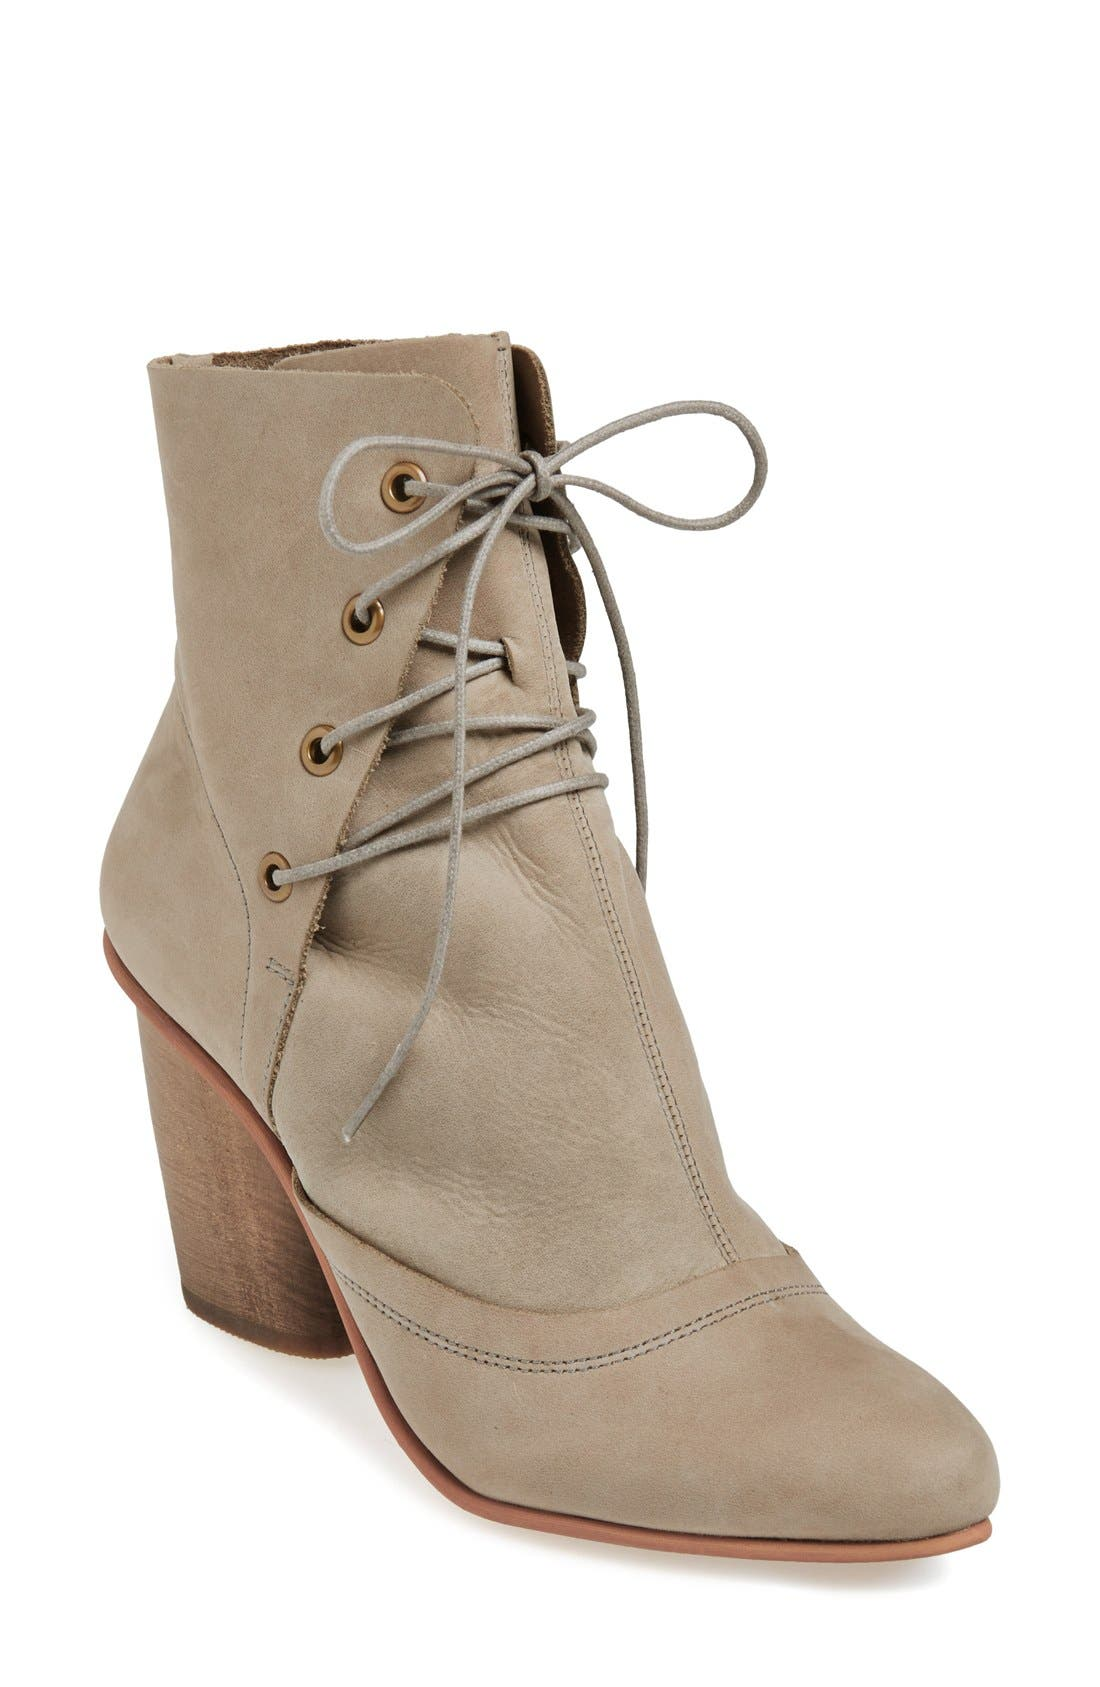 Main Image - J SHOES 'Sadie' Leather Bootie (Women)